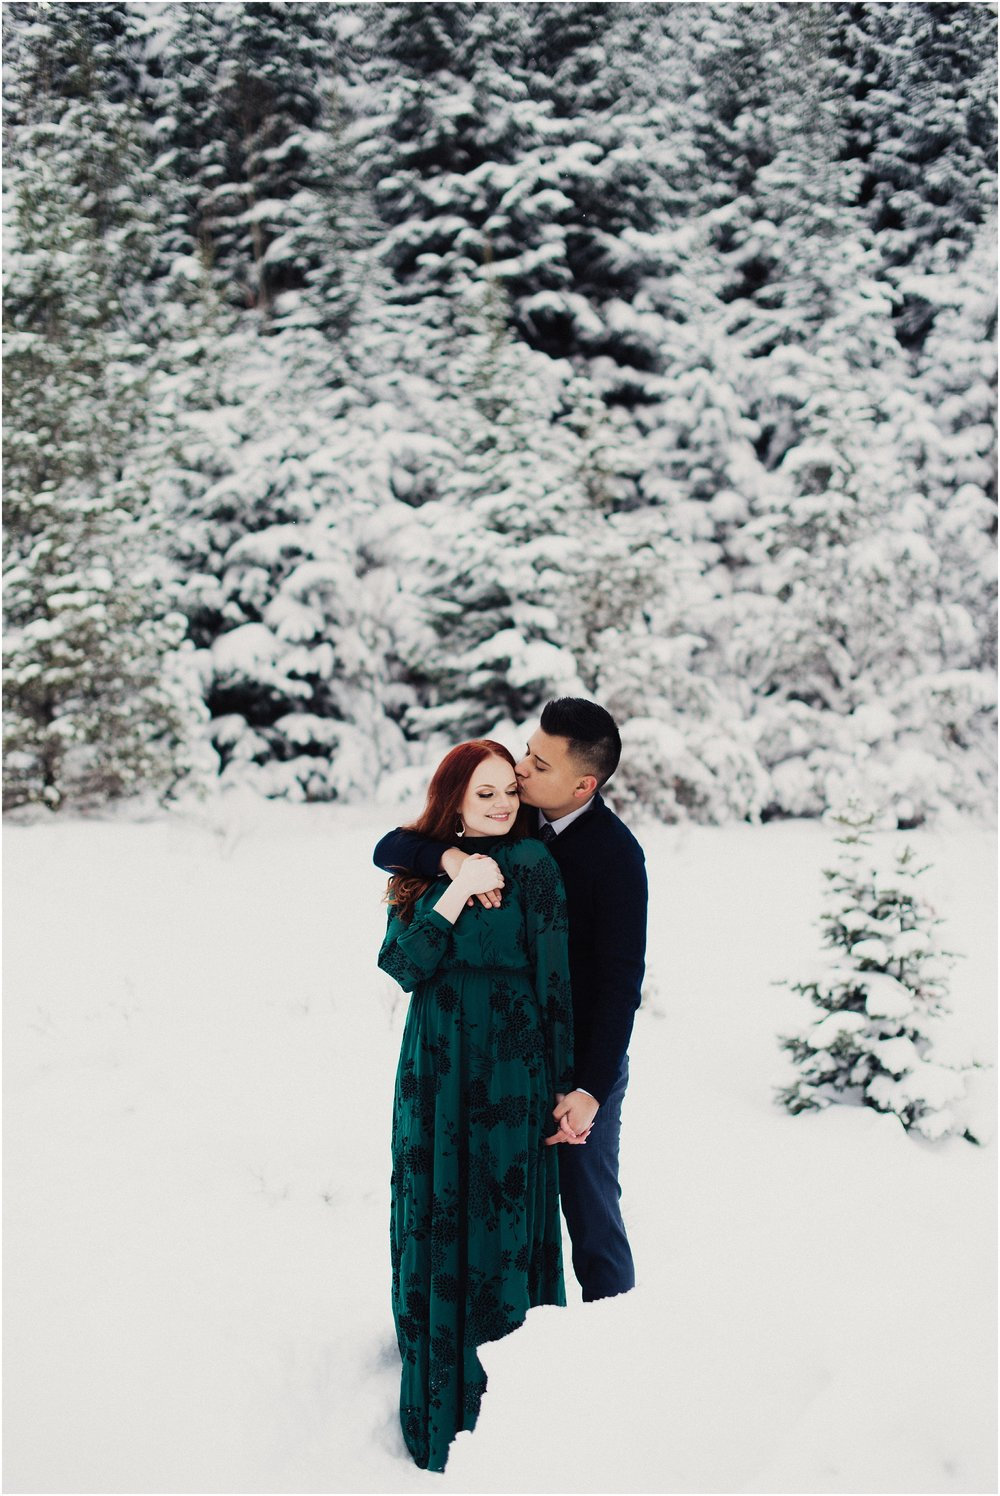 Snowy Engagements